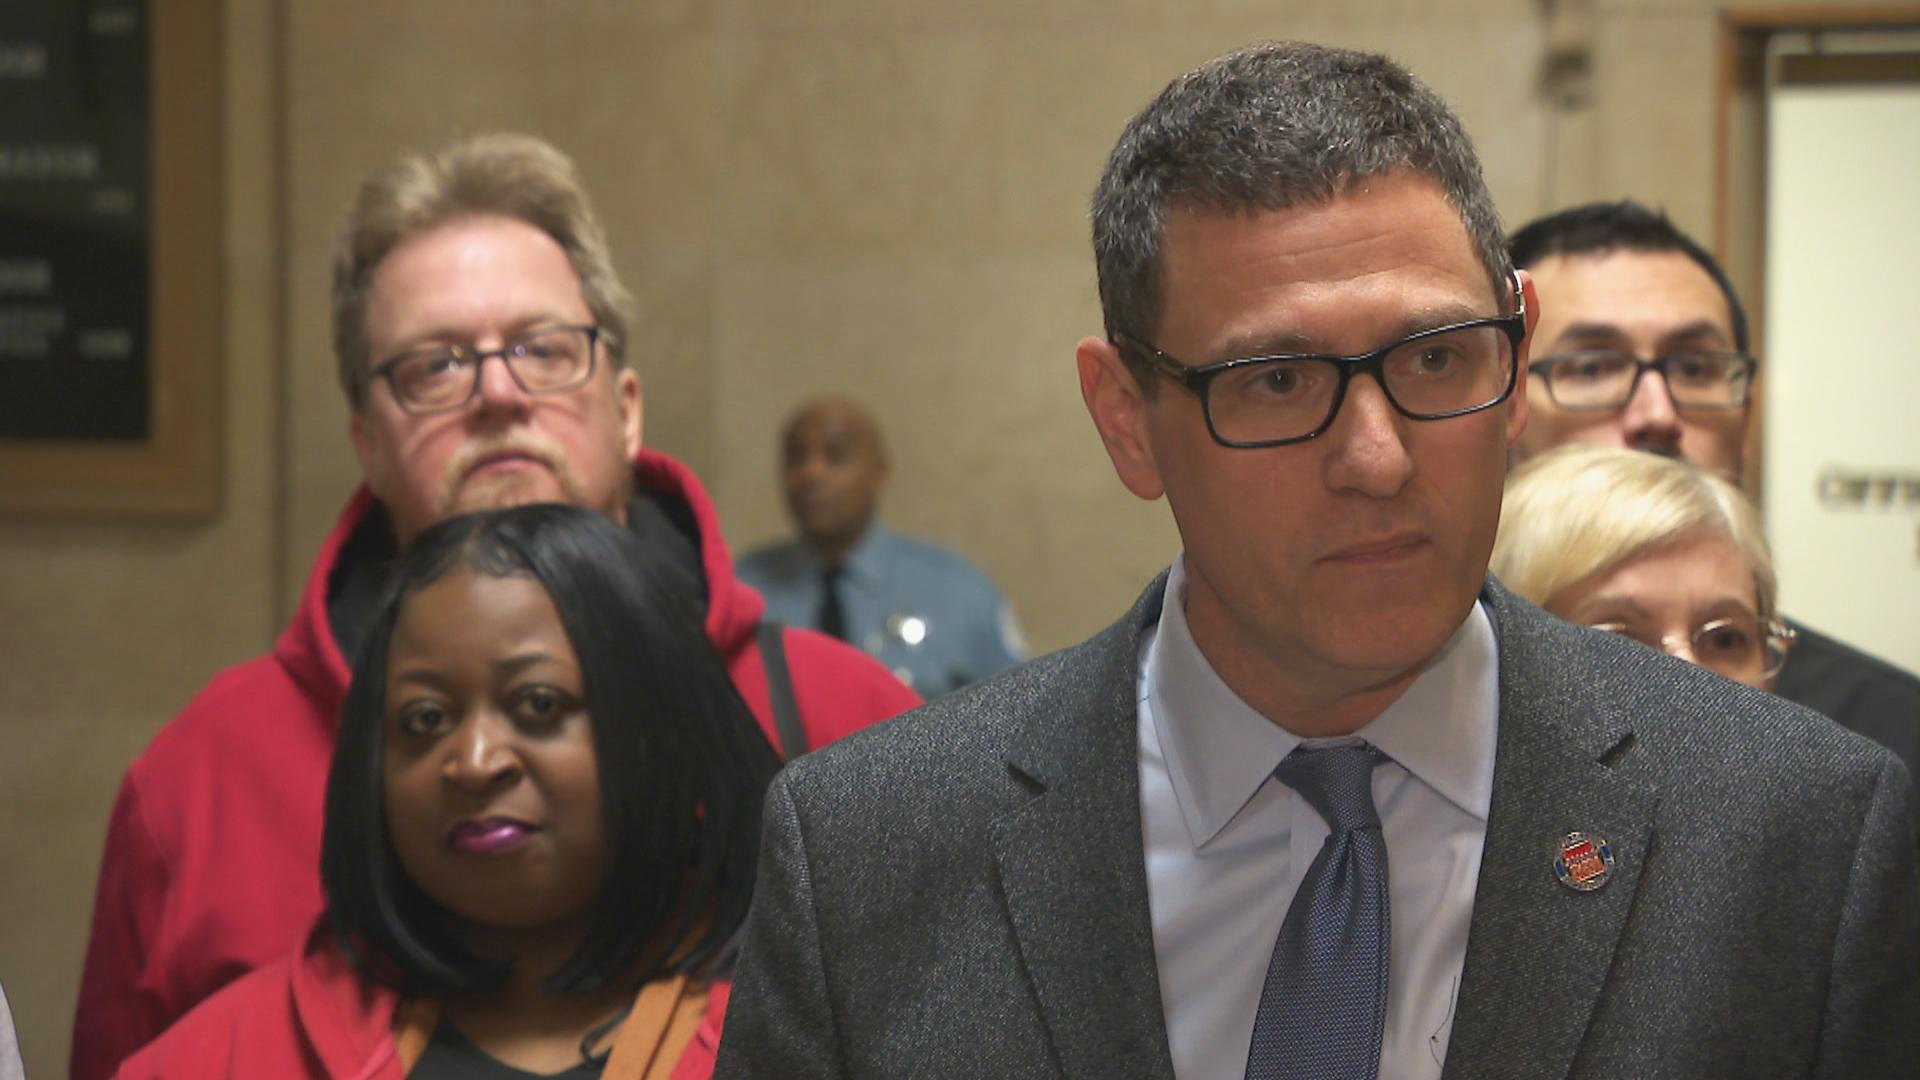 Chicago Teachers Union Vice President Jesse Sharkey said Monday that proposed school closings may violate its labor agreement with CPS. (Chicago Tonight)